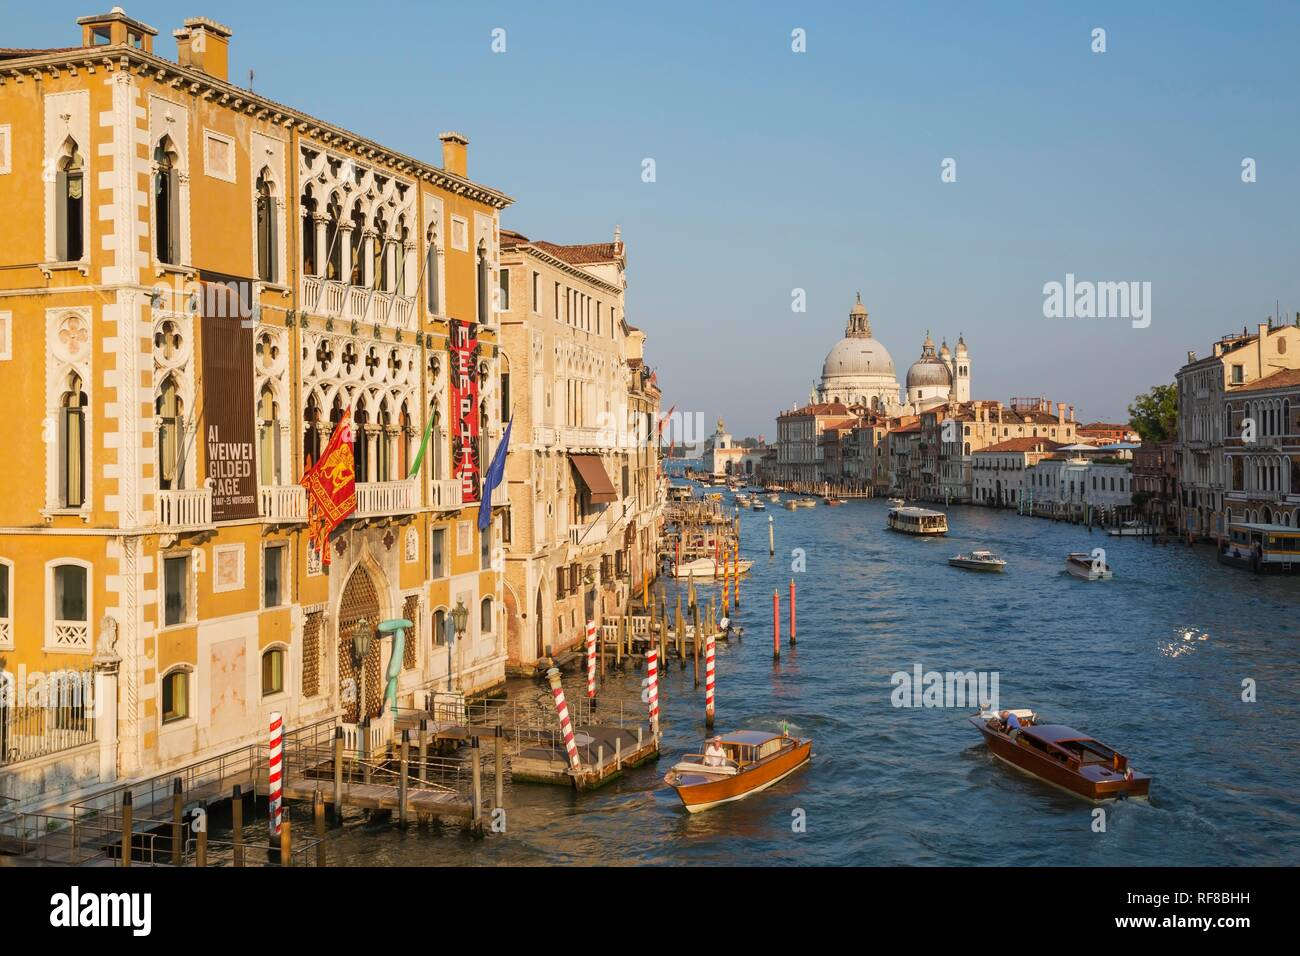 Water taxis and vaporetto on Grand Canal with Renaissance architectural style palace buildings in San Marco and Santa Maria - Stock Image